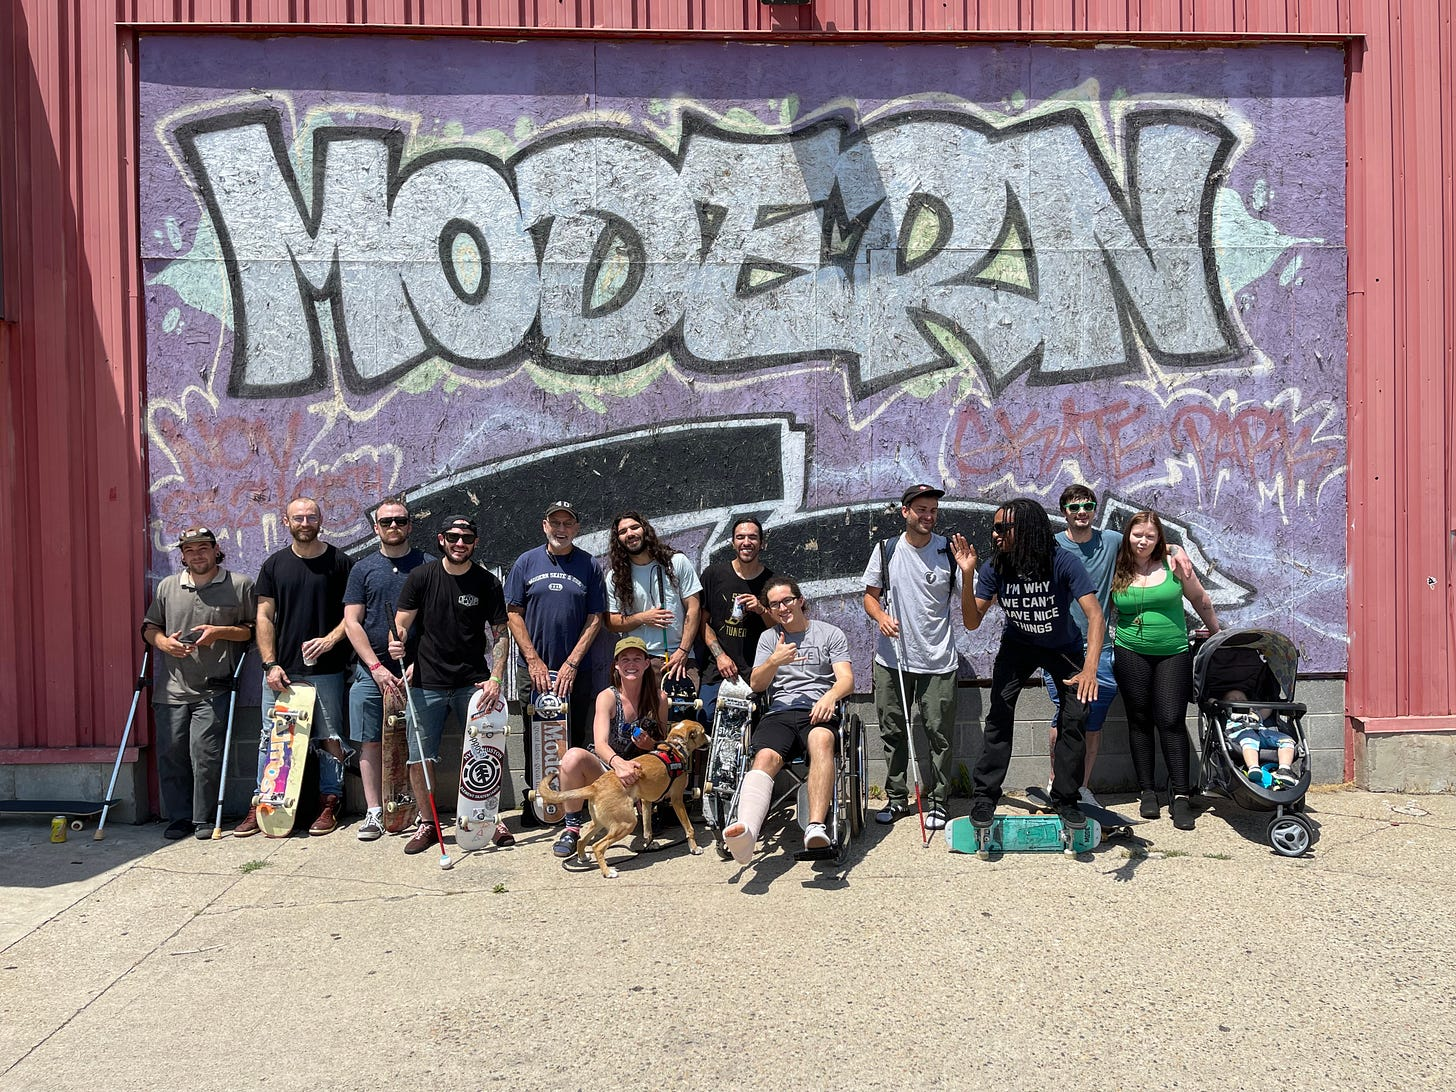 The largest gathering of of Blind and Adaptive Skaters in the History of the World! pictures in front of rad graffiti saying Modern skate